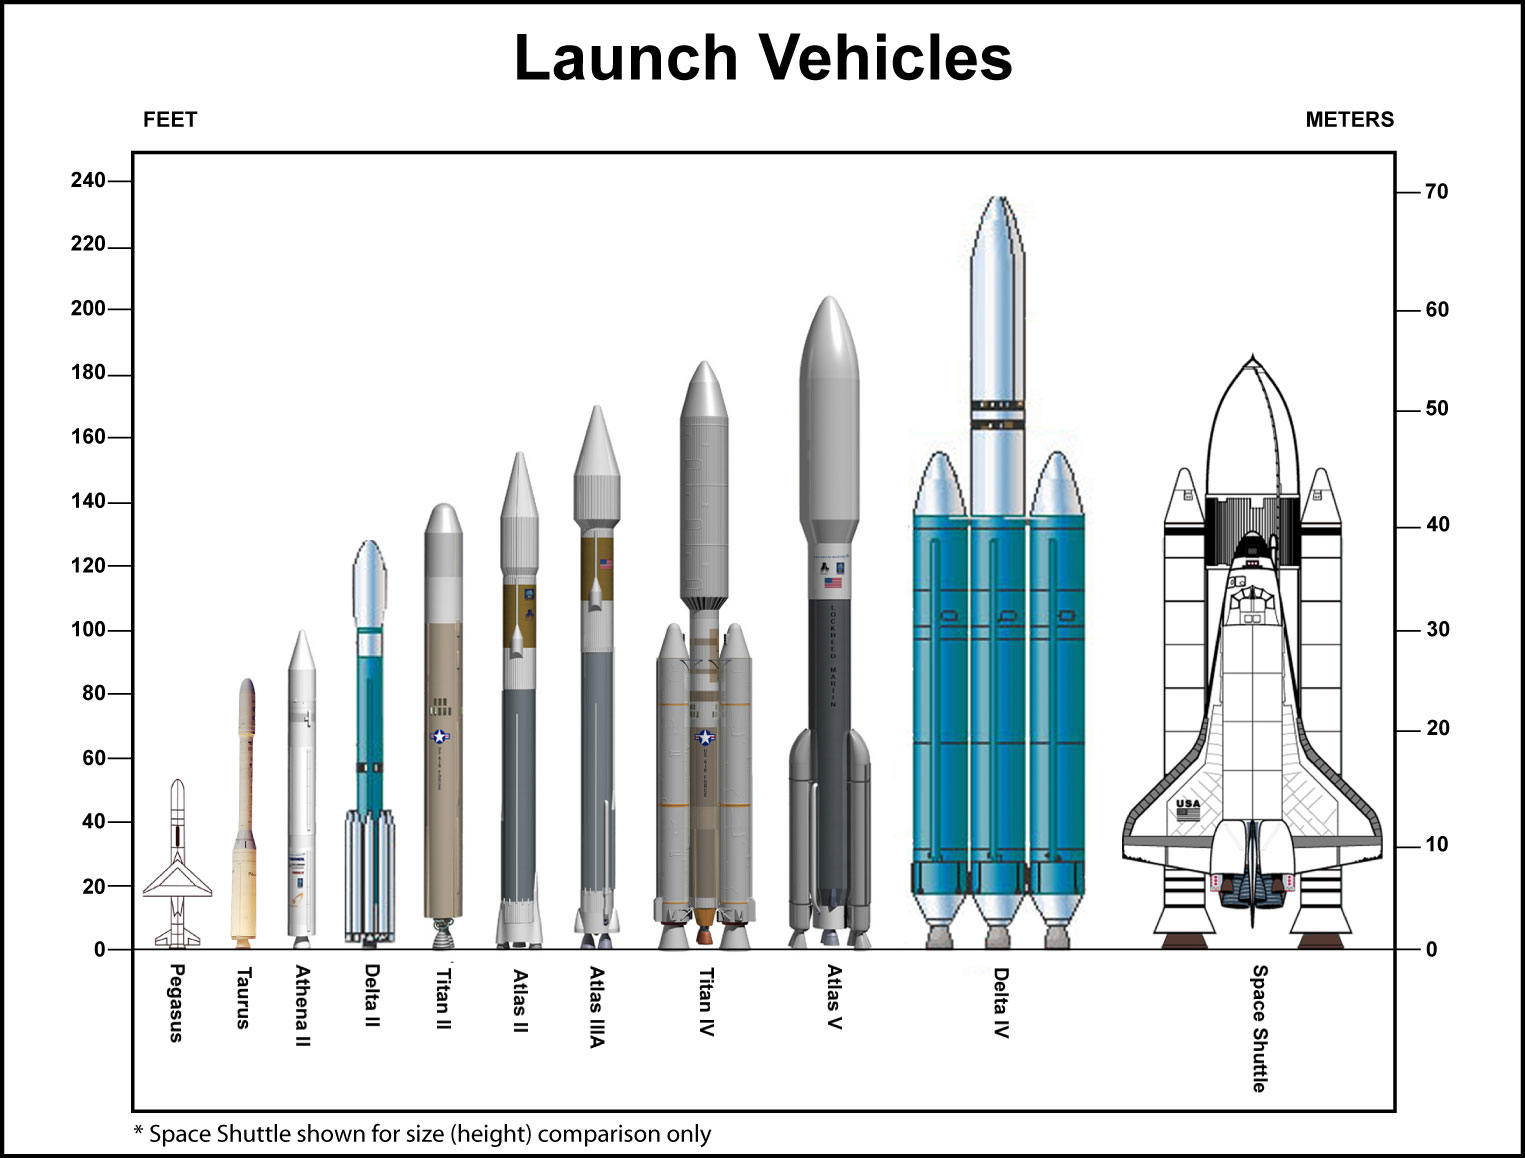 Chart comparing sizes of different launch vehicles